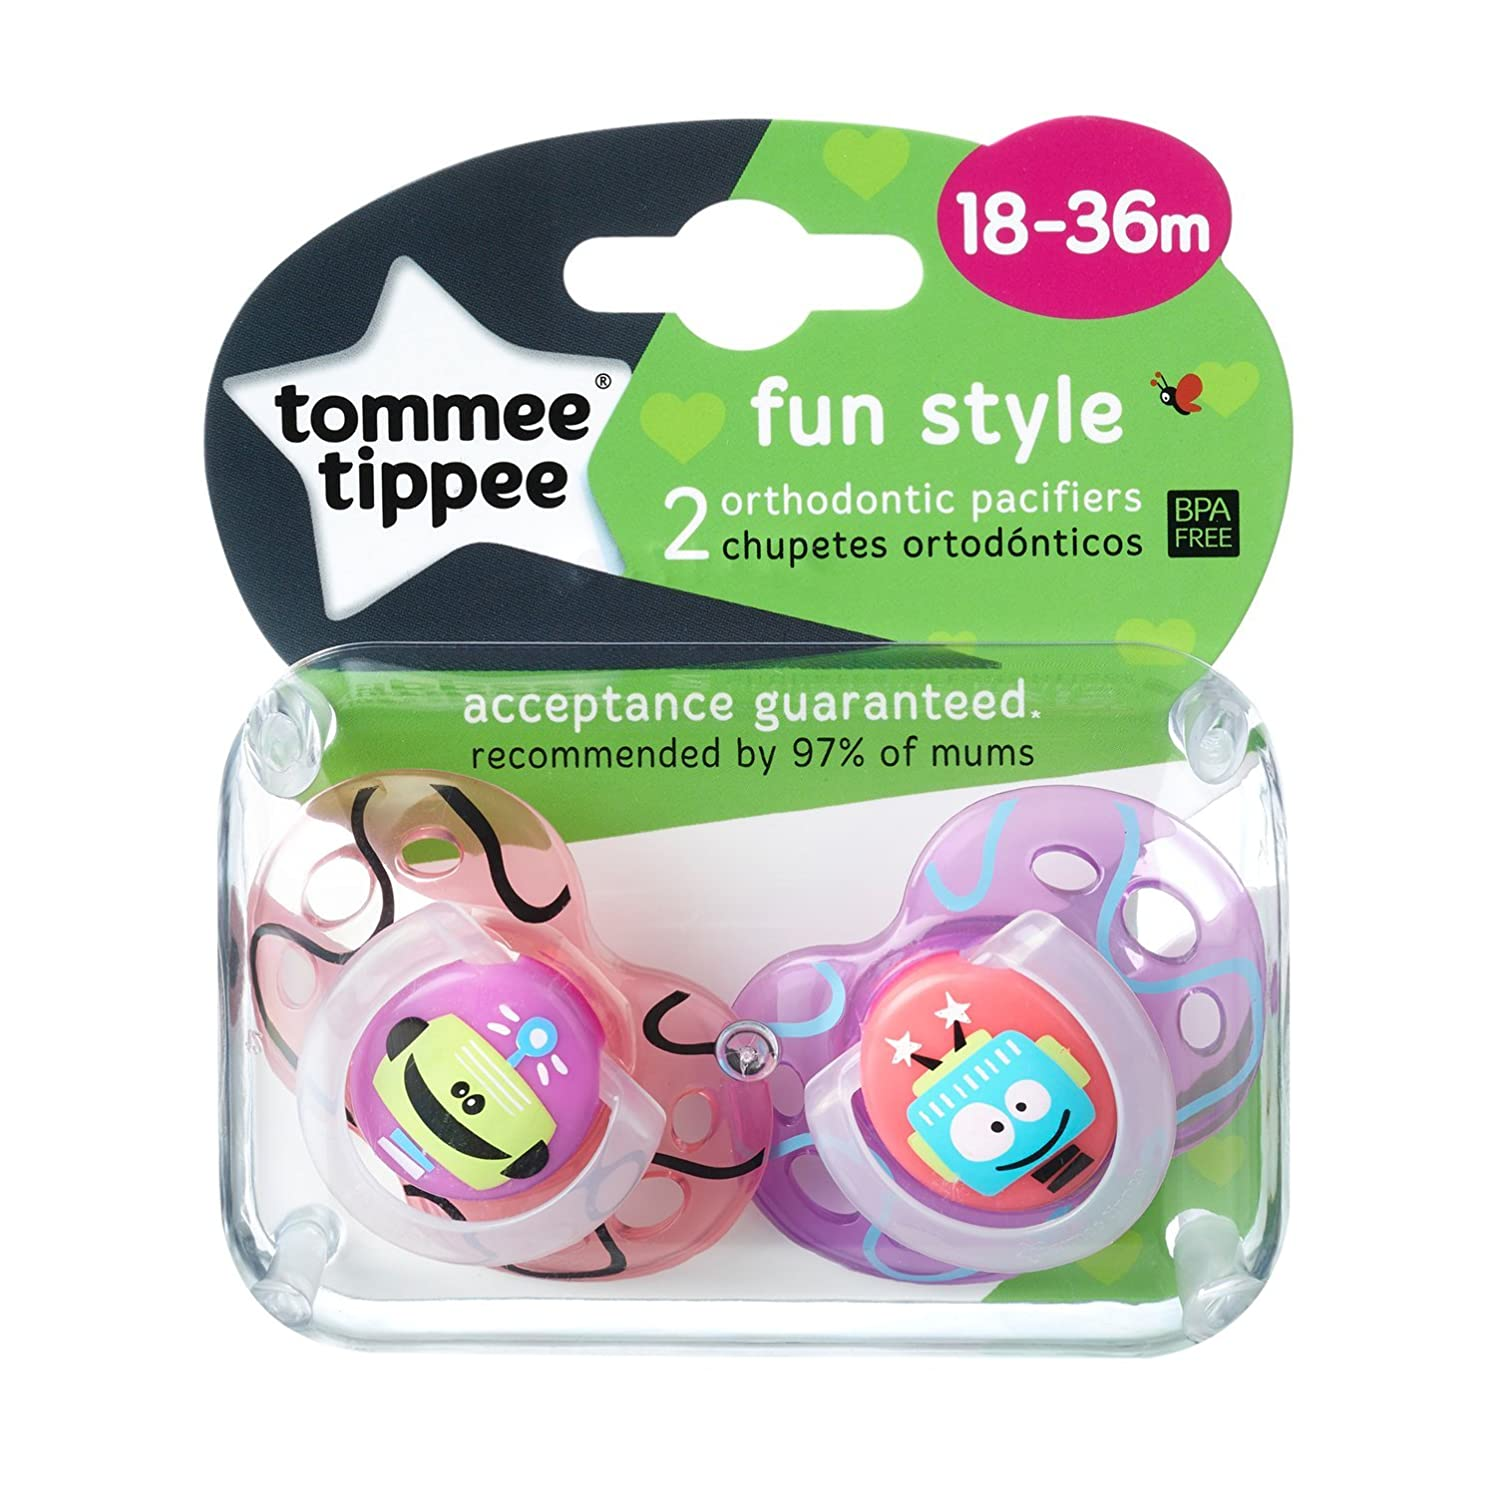 Tommee Tippee Closer to Nature Fun Style Orthodontic Toddler Soothie Pacifier, 18-36 Months -...